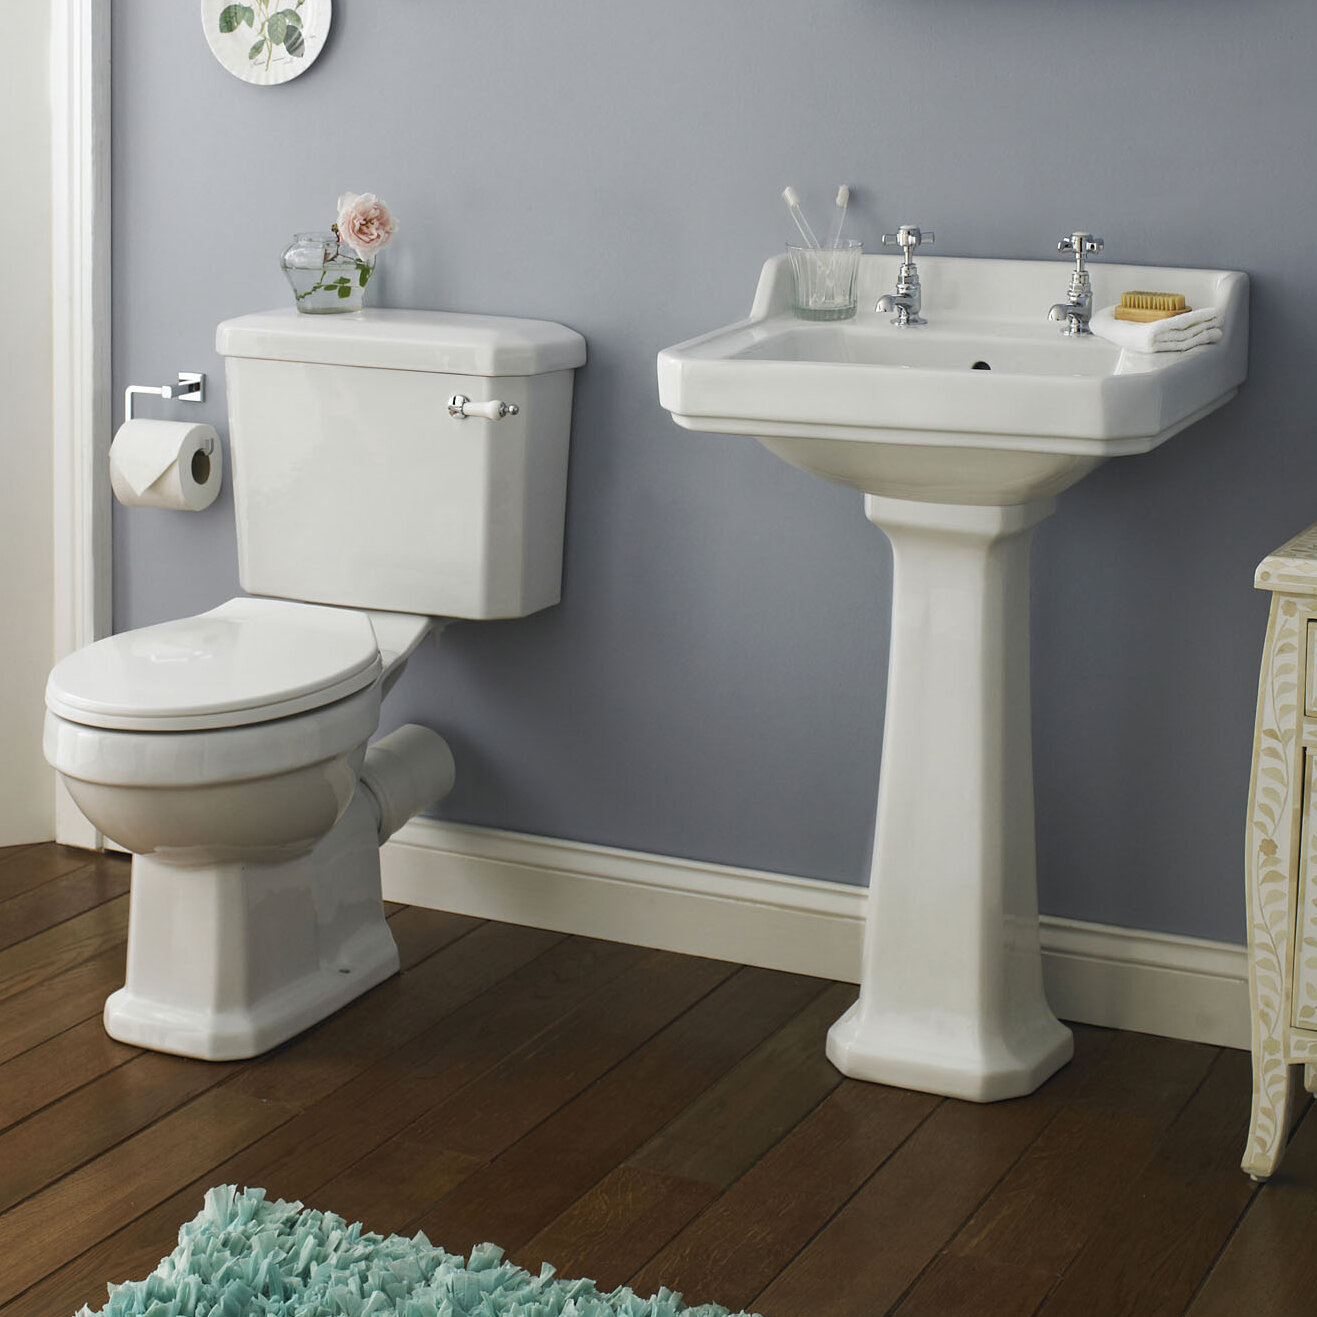 Helman Bathroom Suite with Toilet Seat